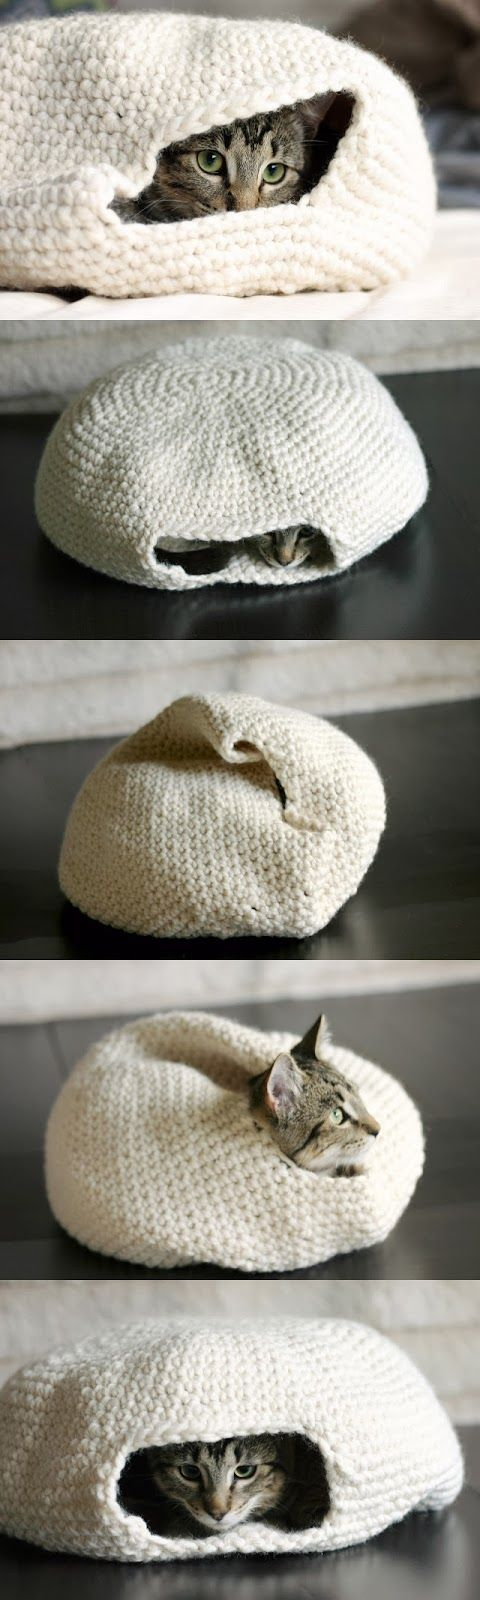 DIY Cozy Crochet Cat Bed | DIY Craft Project